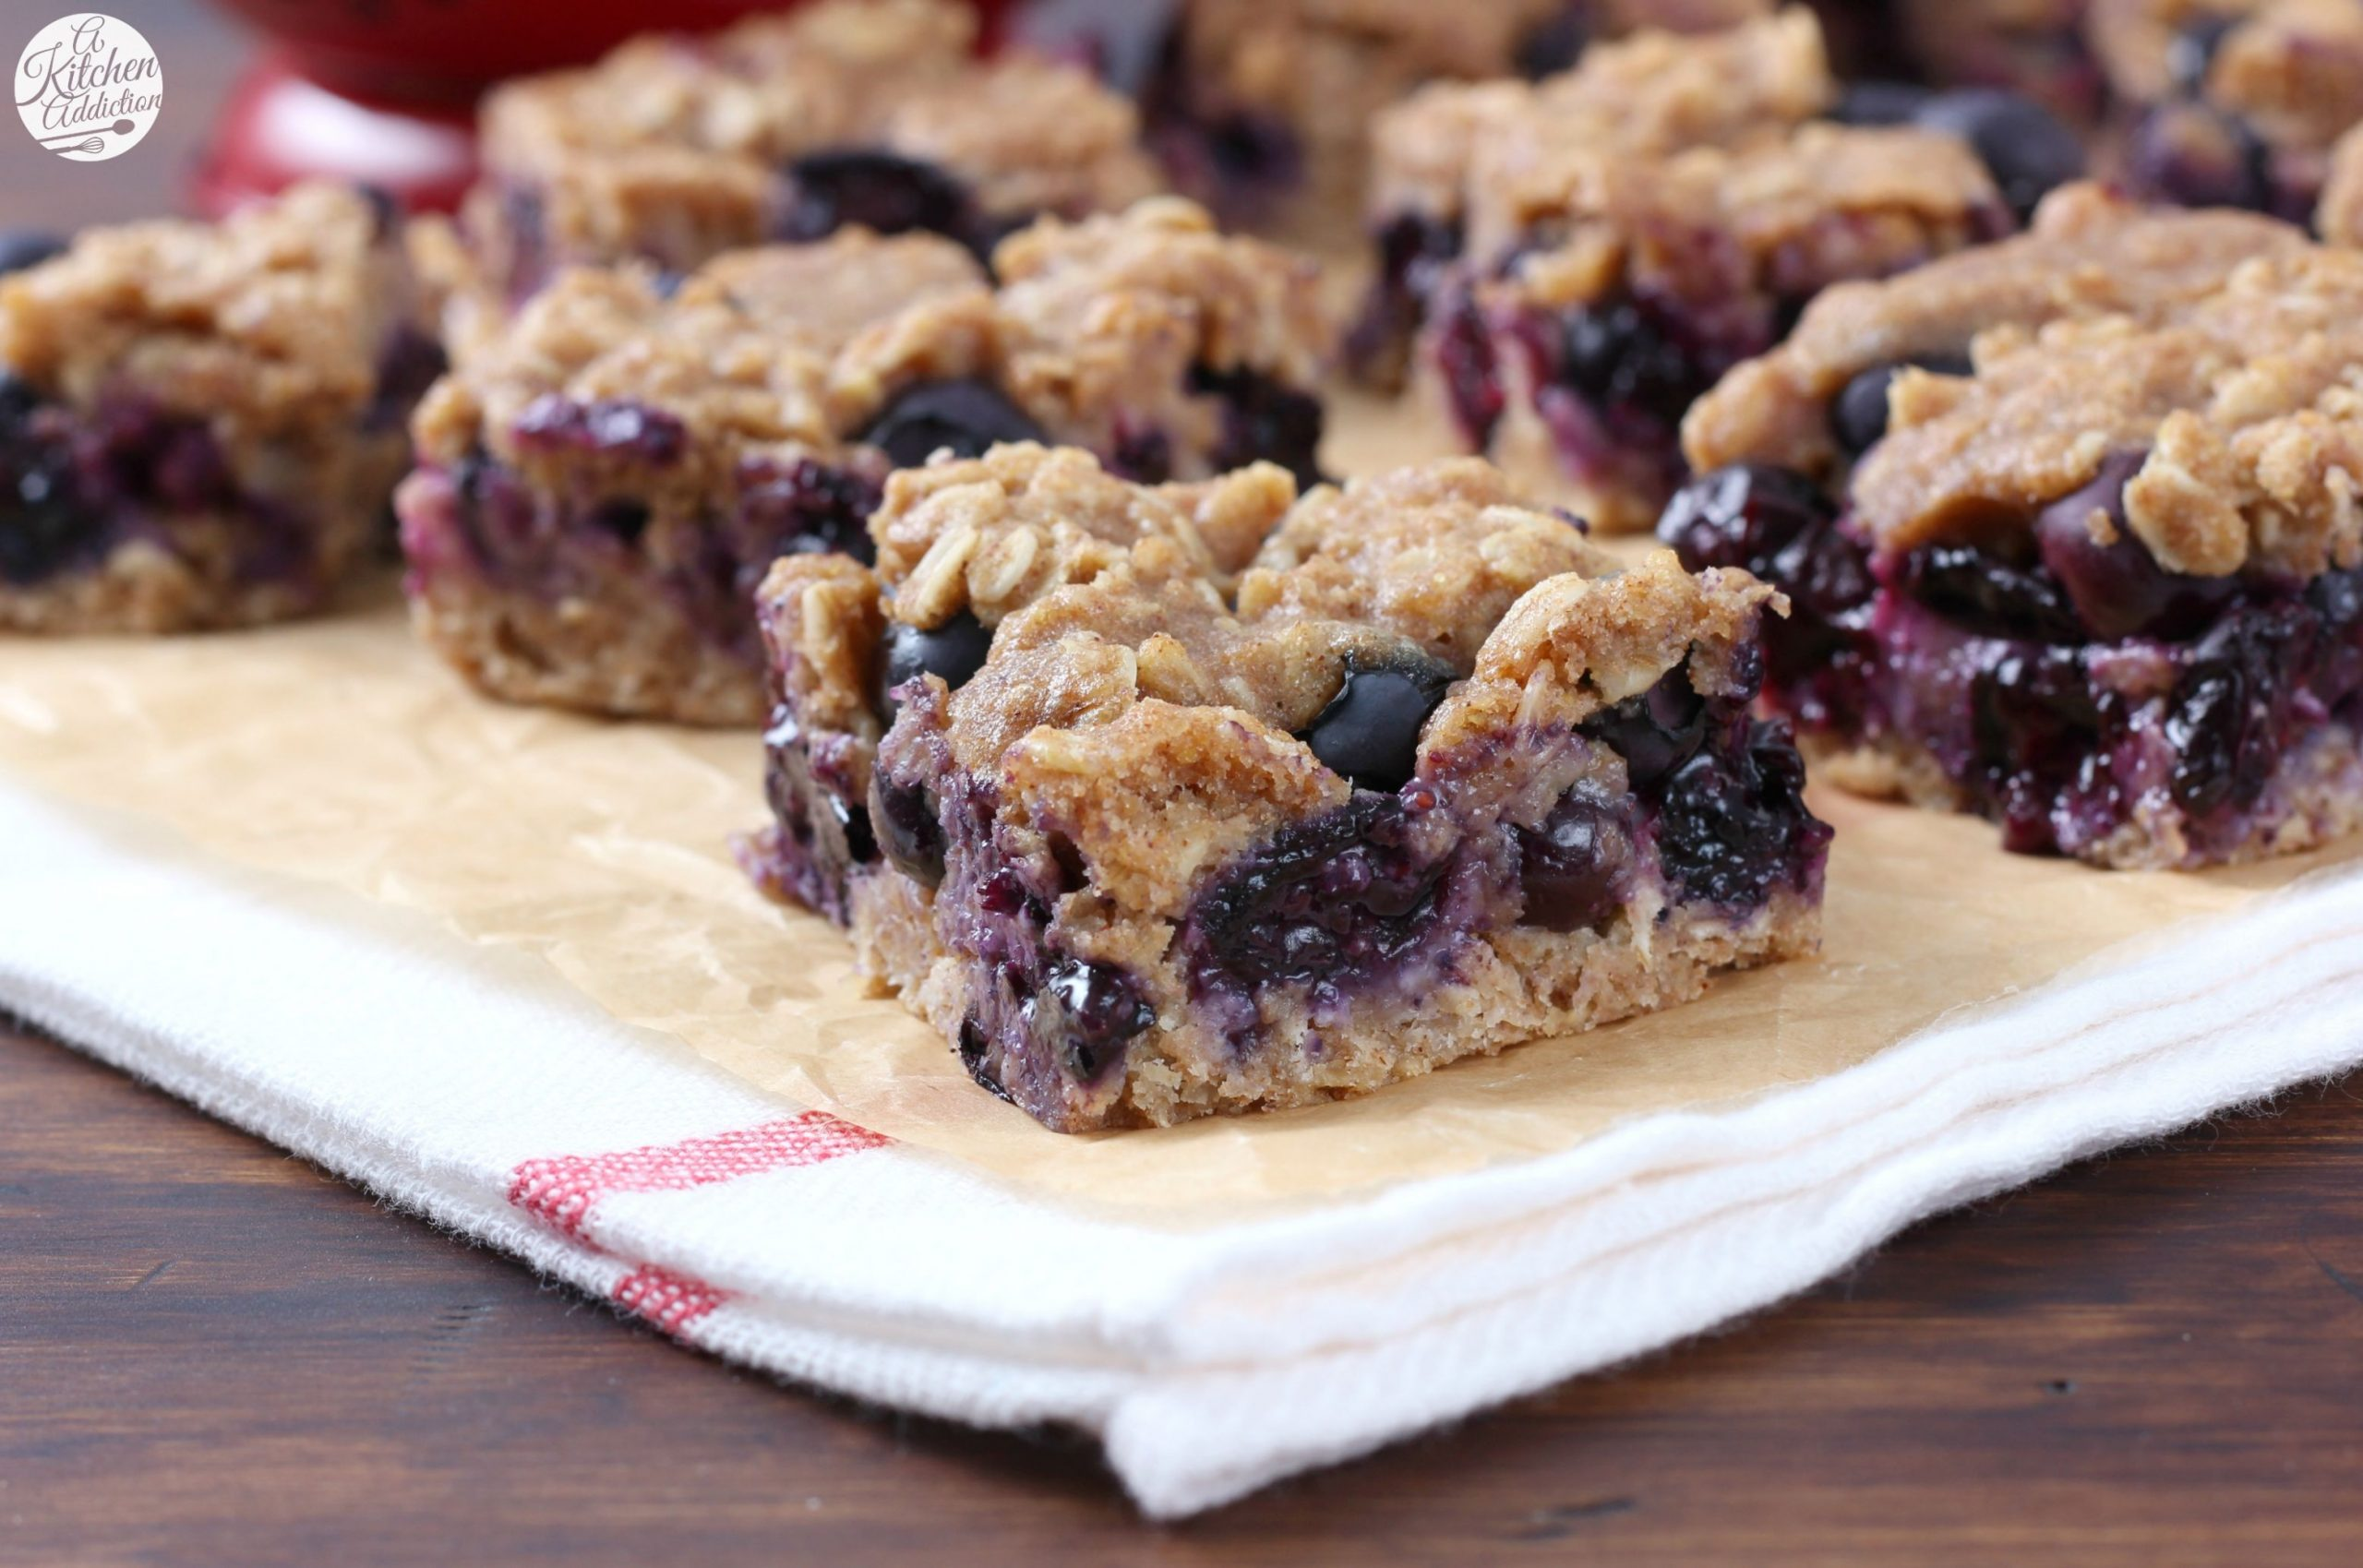 Blueberry Oat Snack Bars - Healthy Recipes With Blueberries